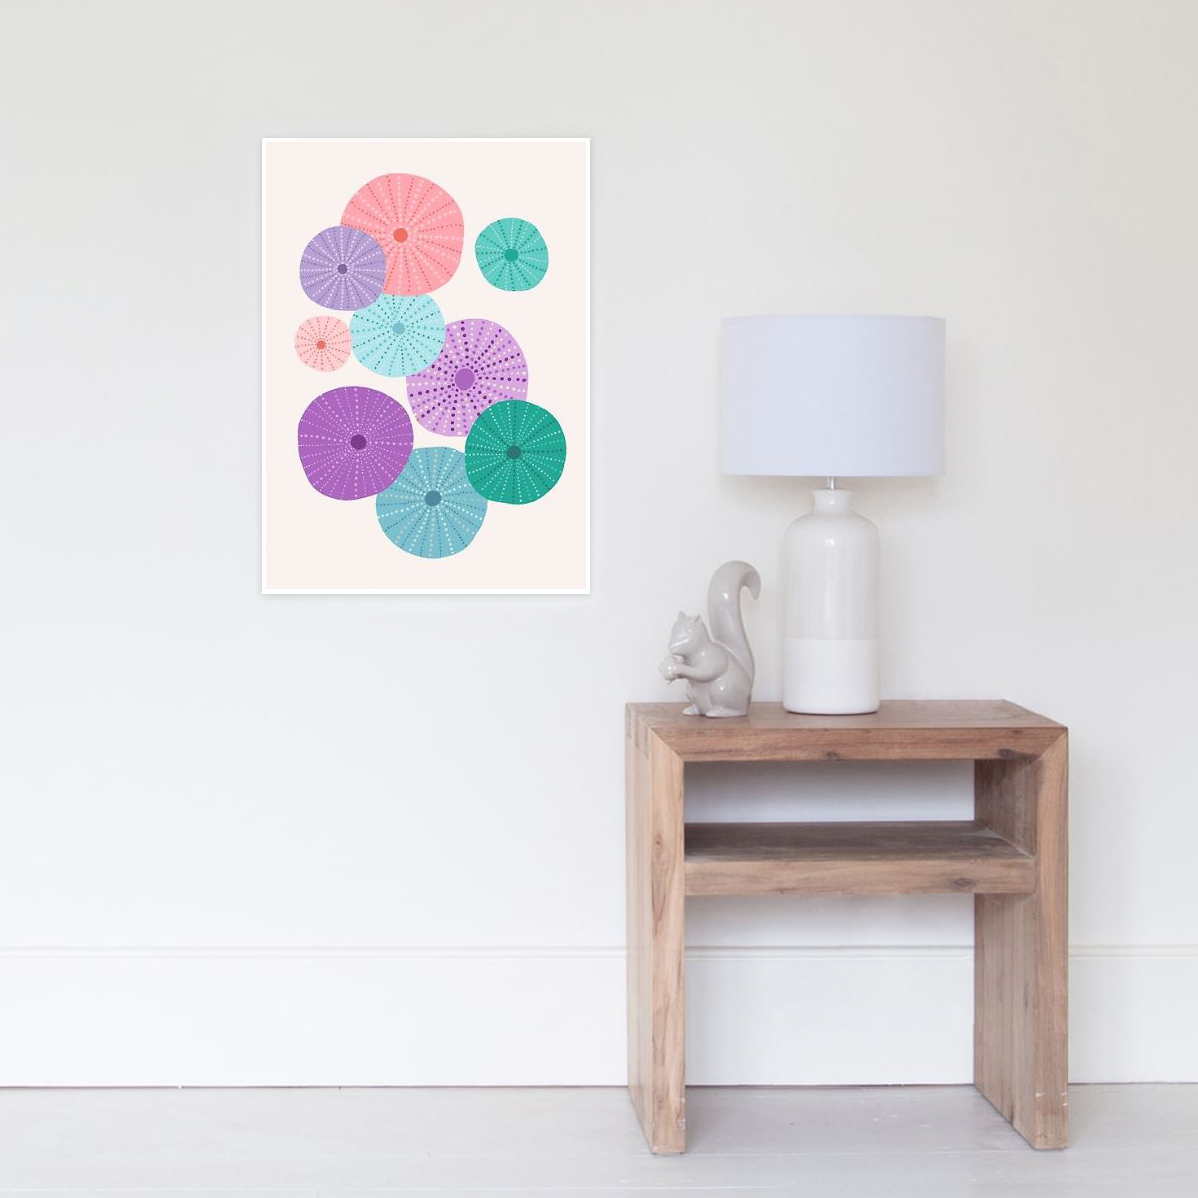 Wall art of my sea urchin pattern creates a fun abstract art for anyone's space